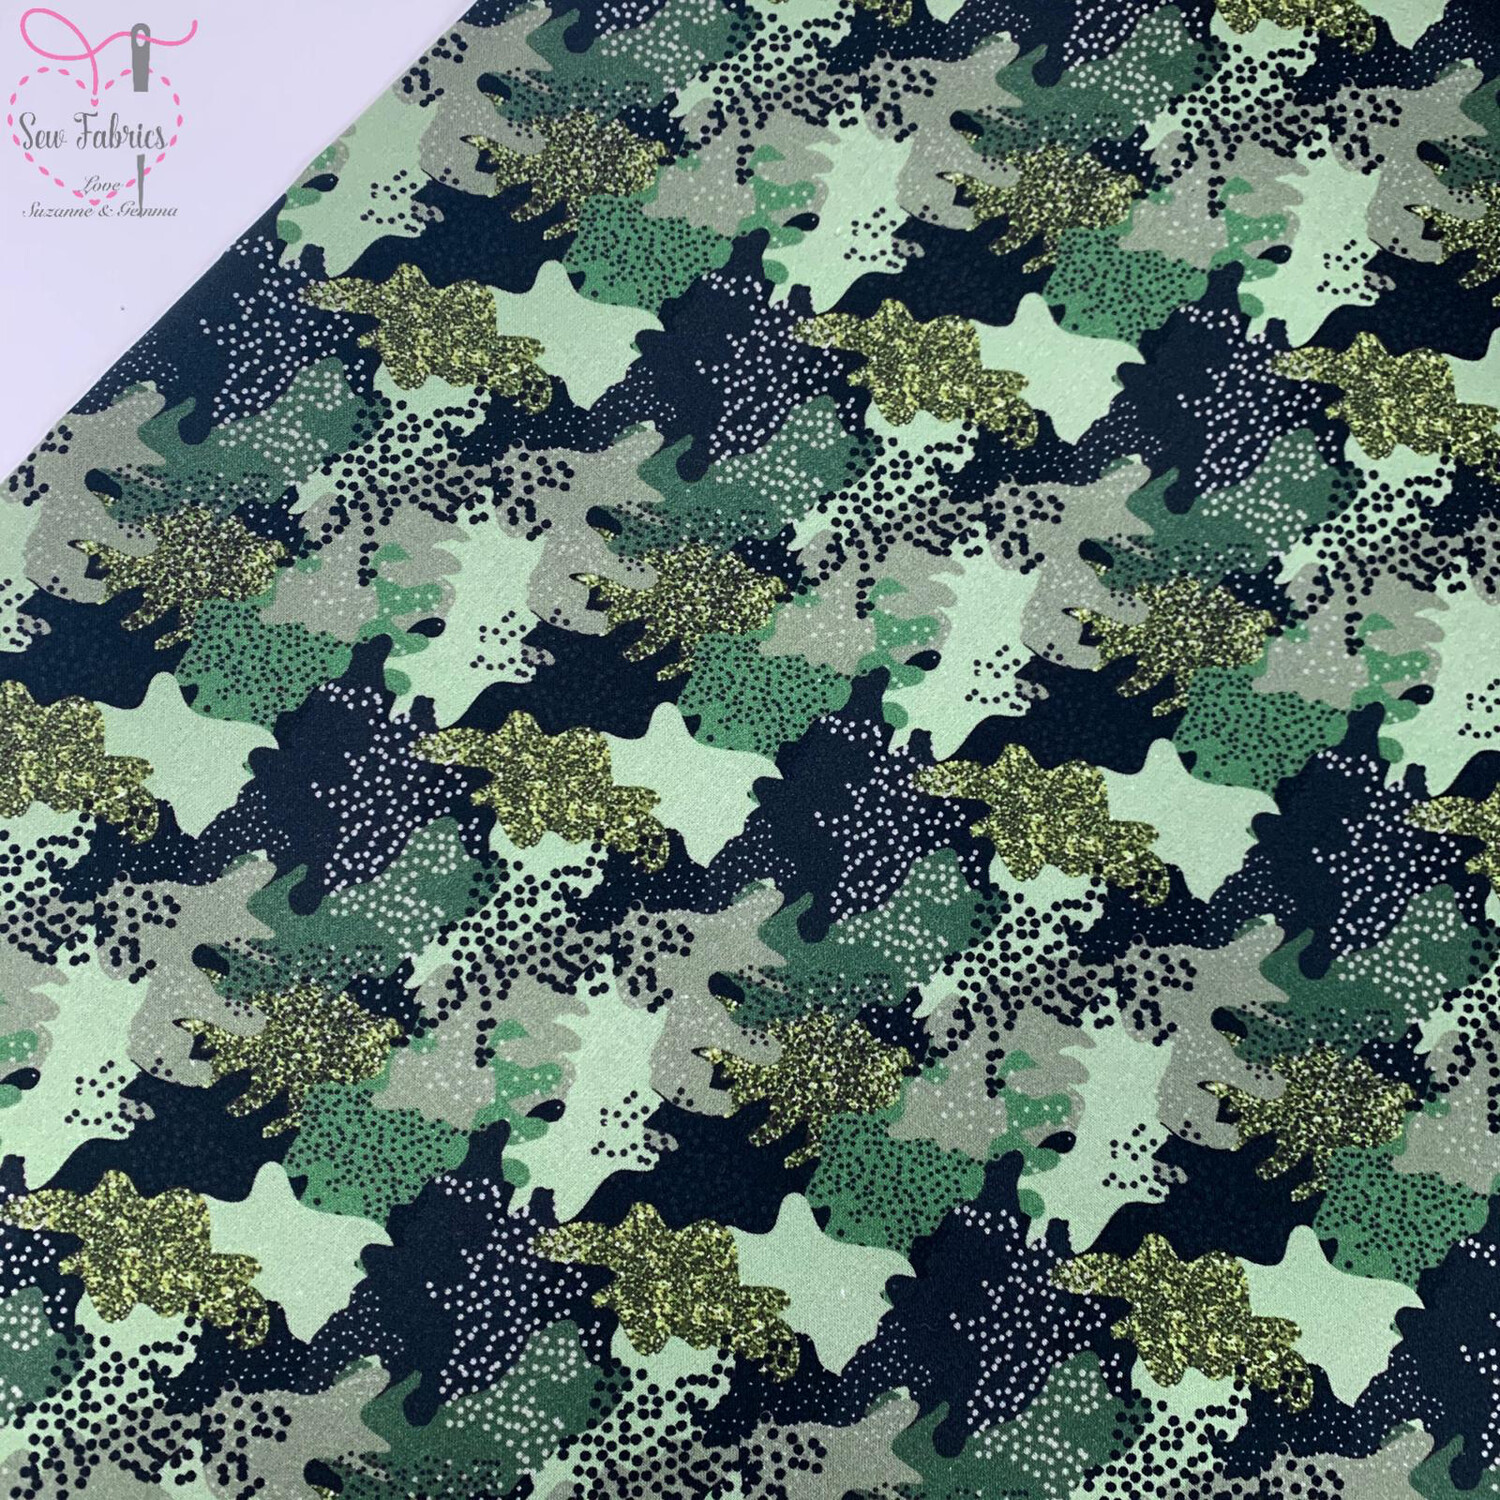 "Khaki Speckled Camouflage, The Little Johnny Collection Summer Fabric 100% Cotton 58"" Wide Width"